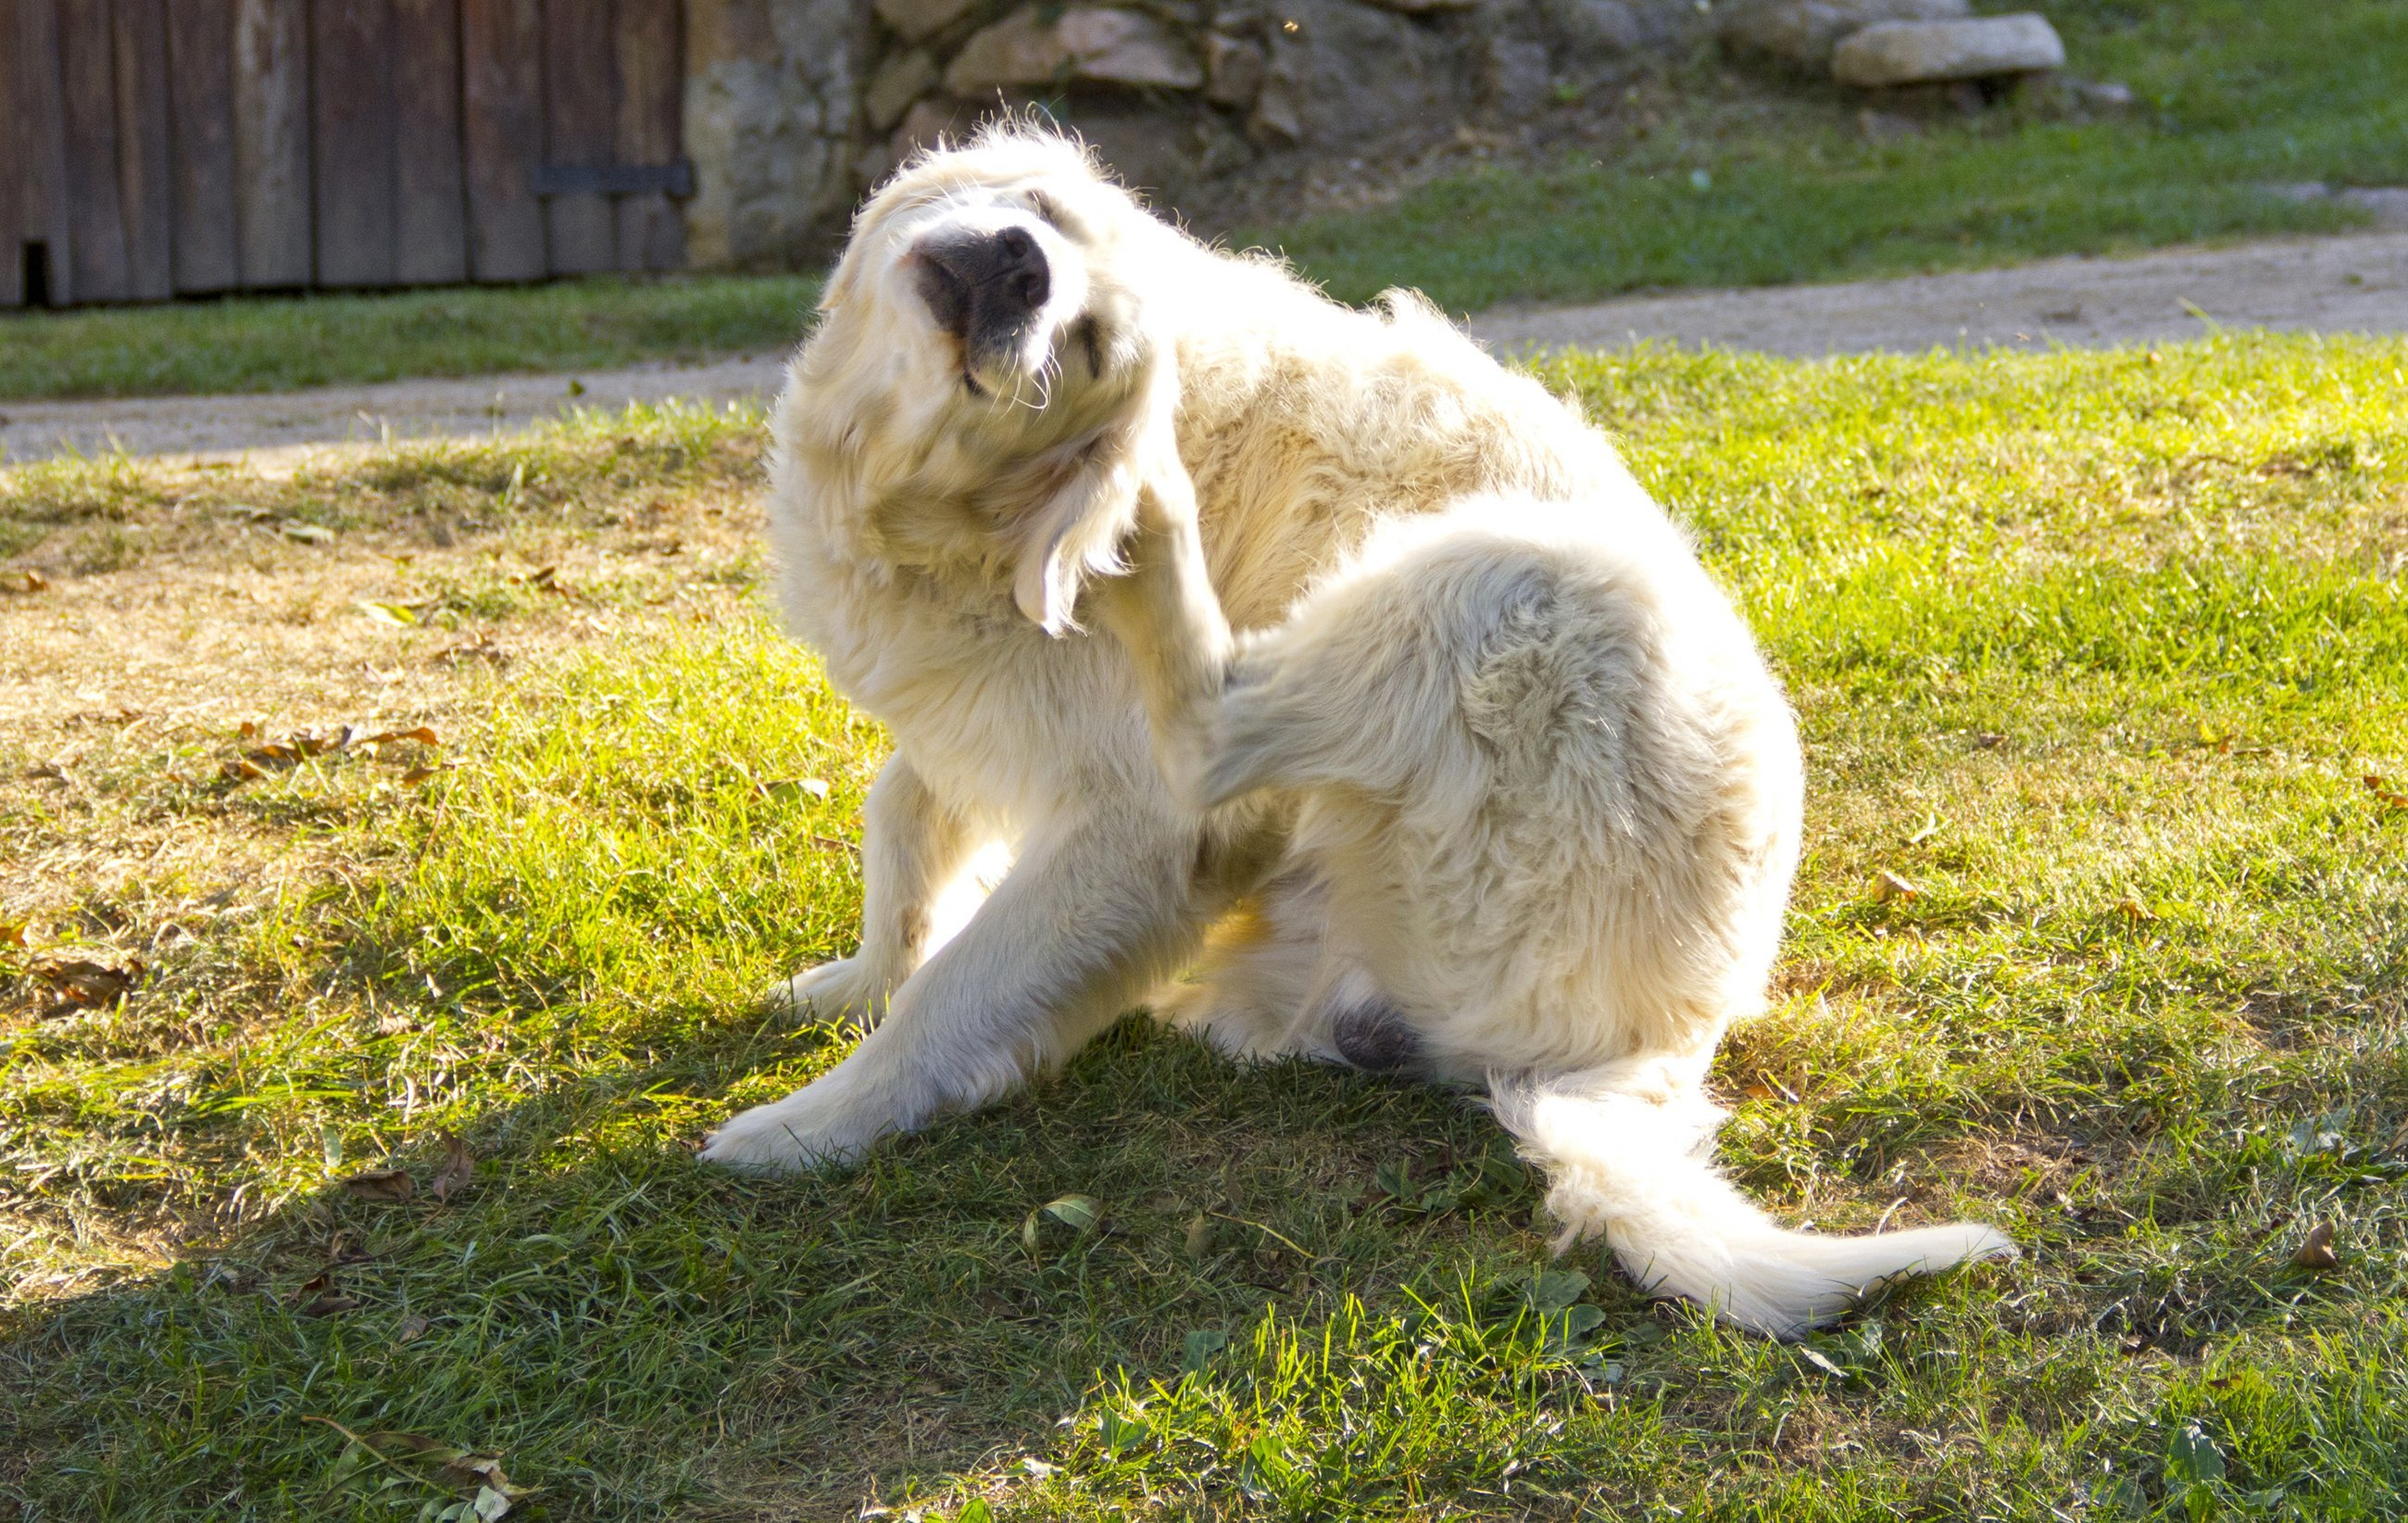 A white dog scratching | Photo: Shutterstock